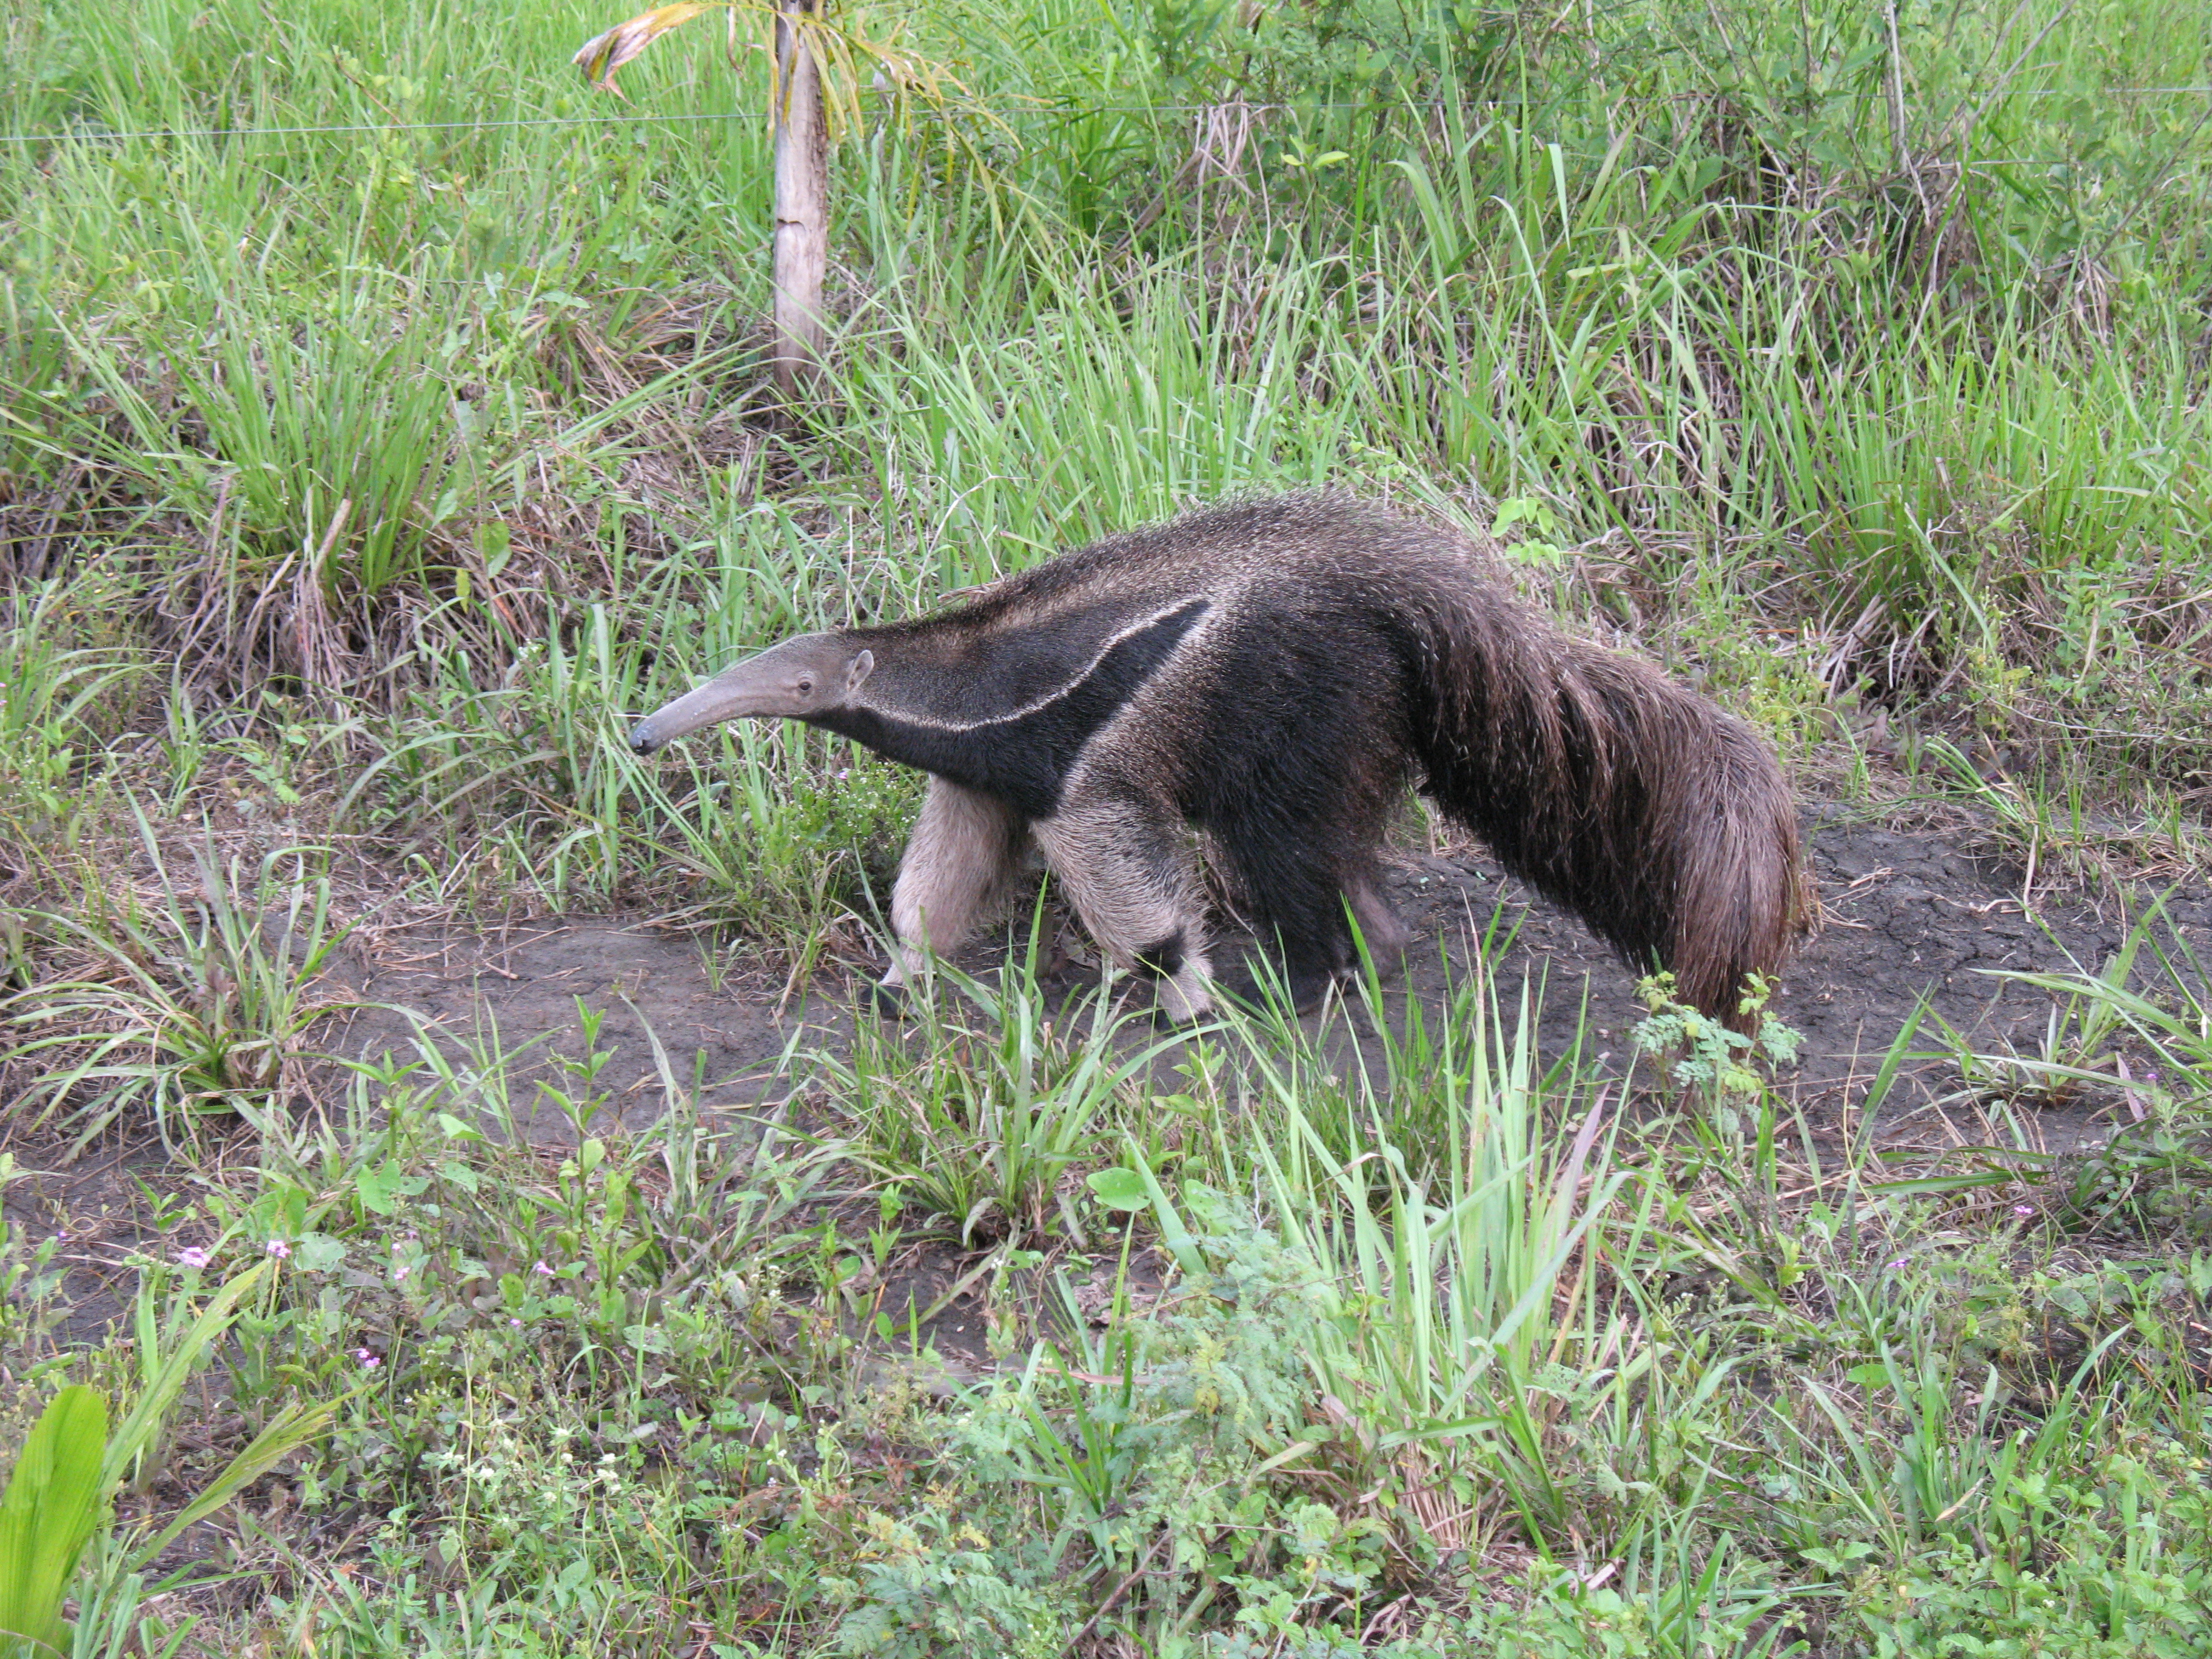 Image of Giant Anteater